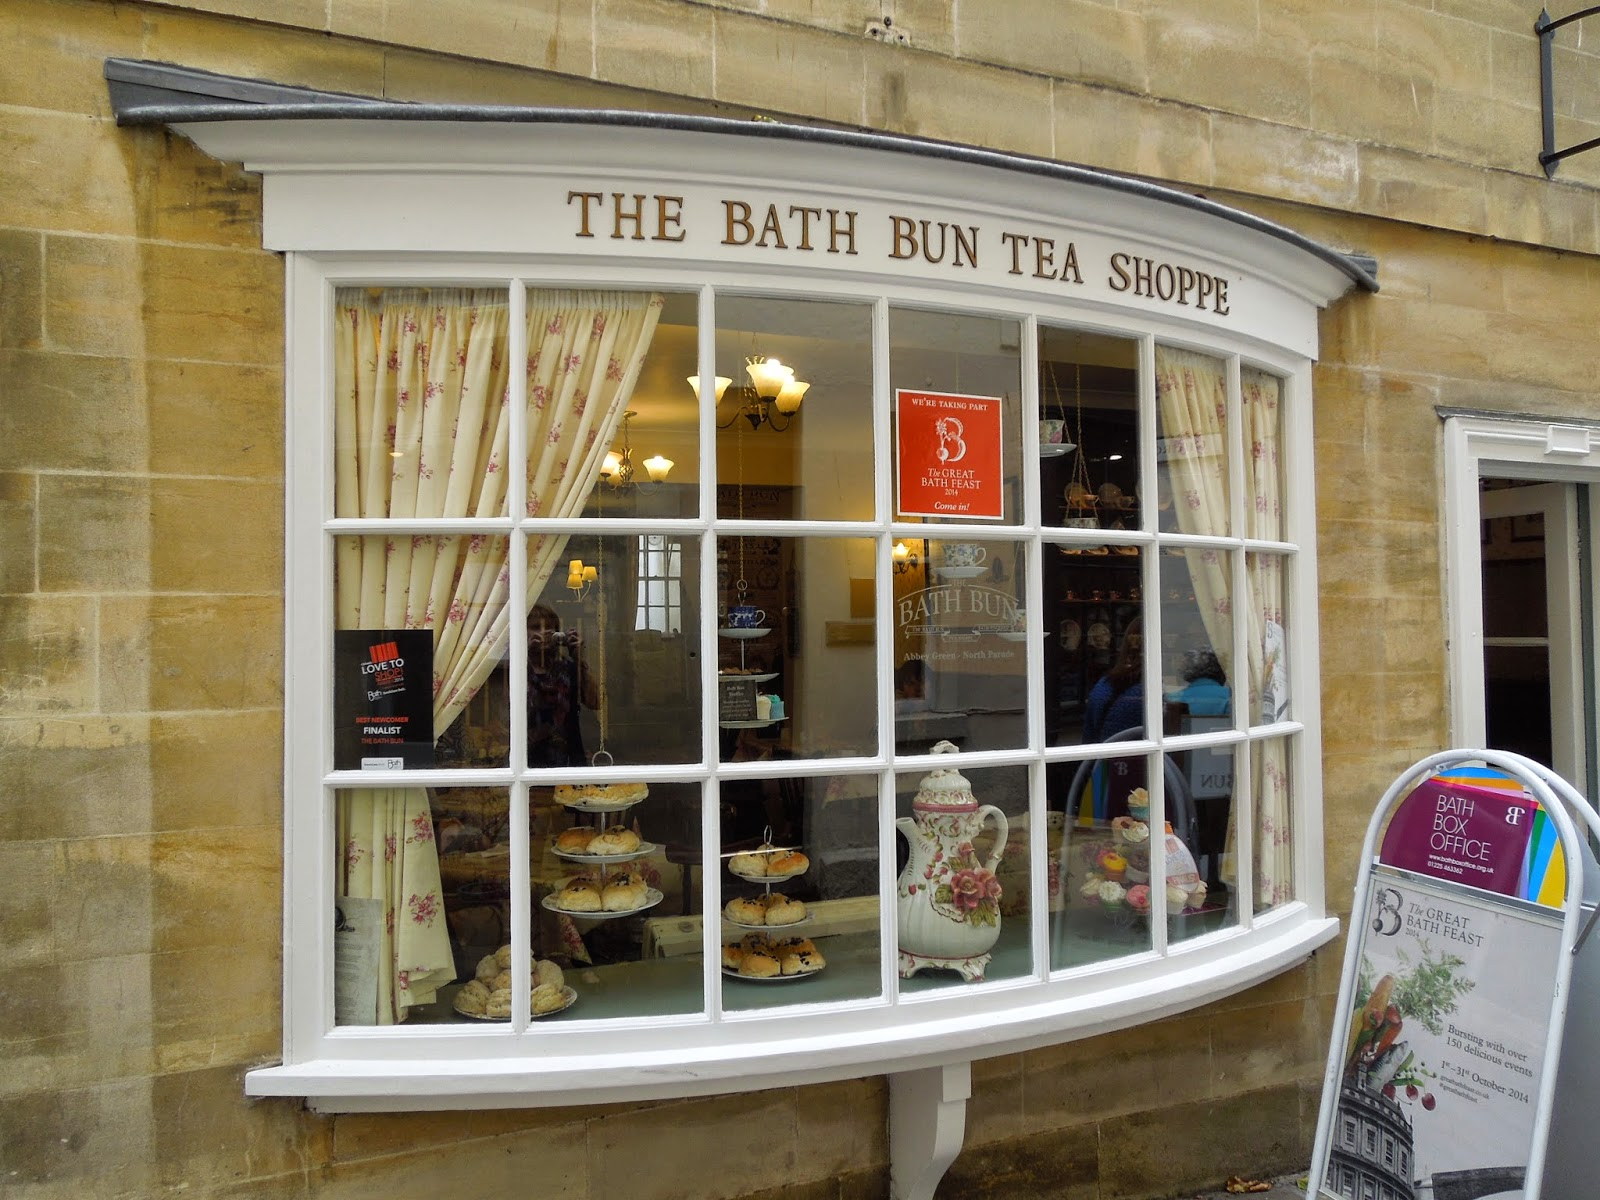 Bath Bun Tea Shoppe